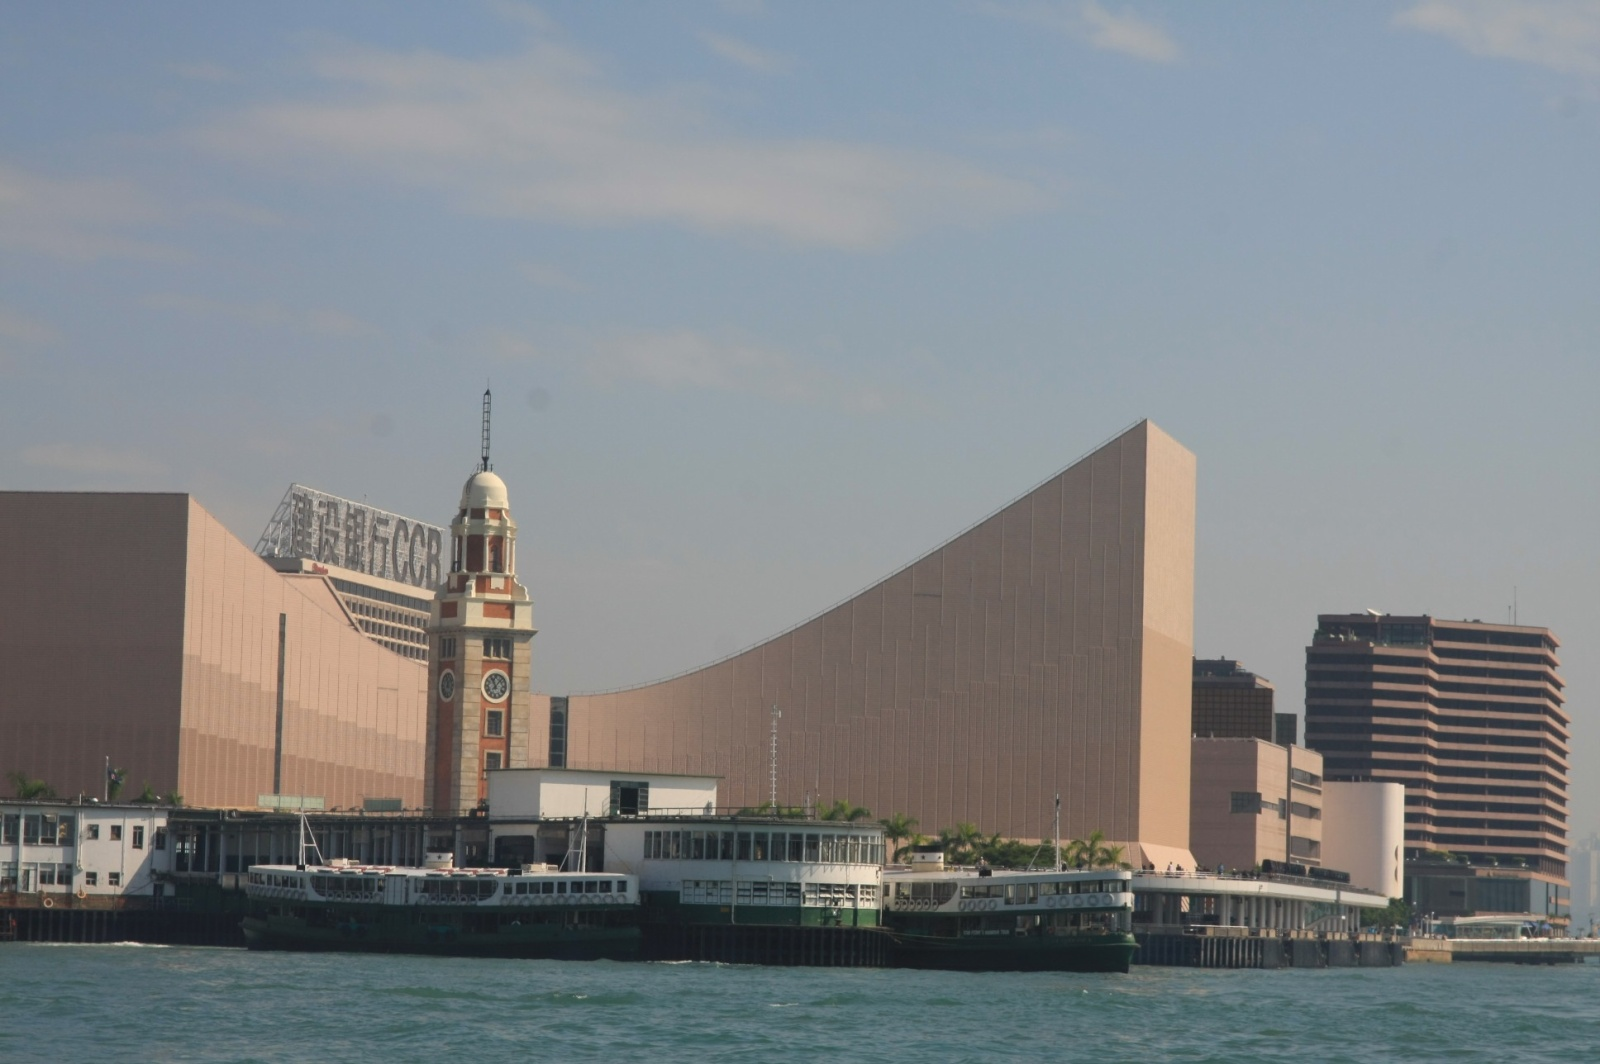 Kowloon side - museum of science